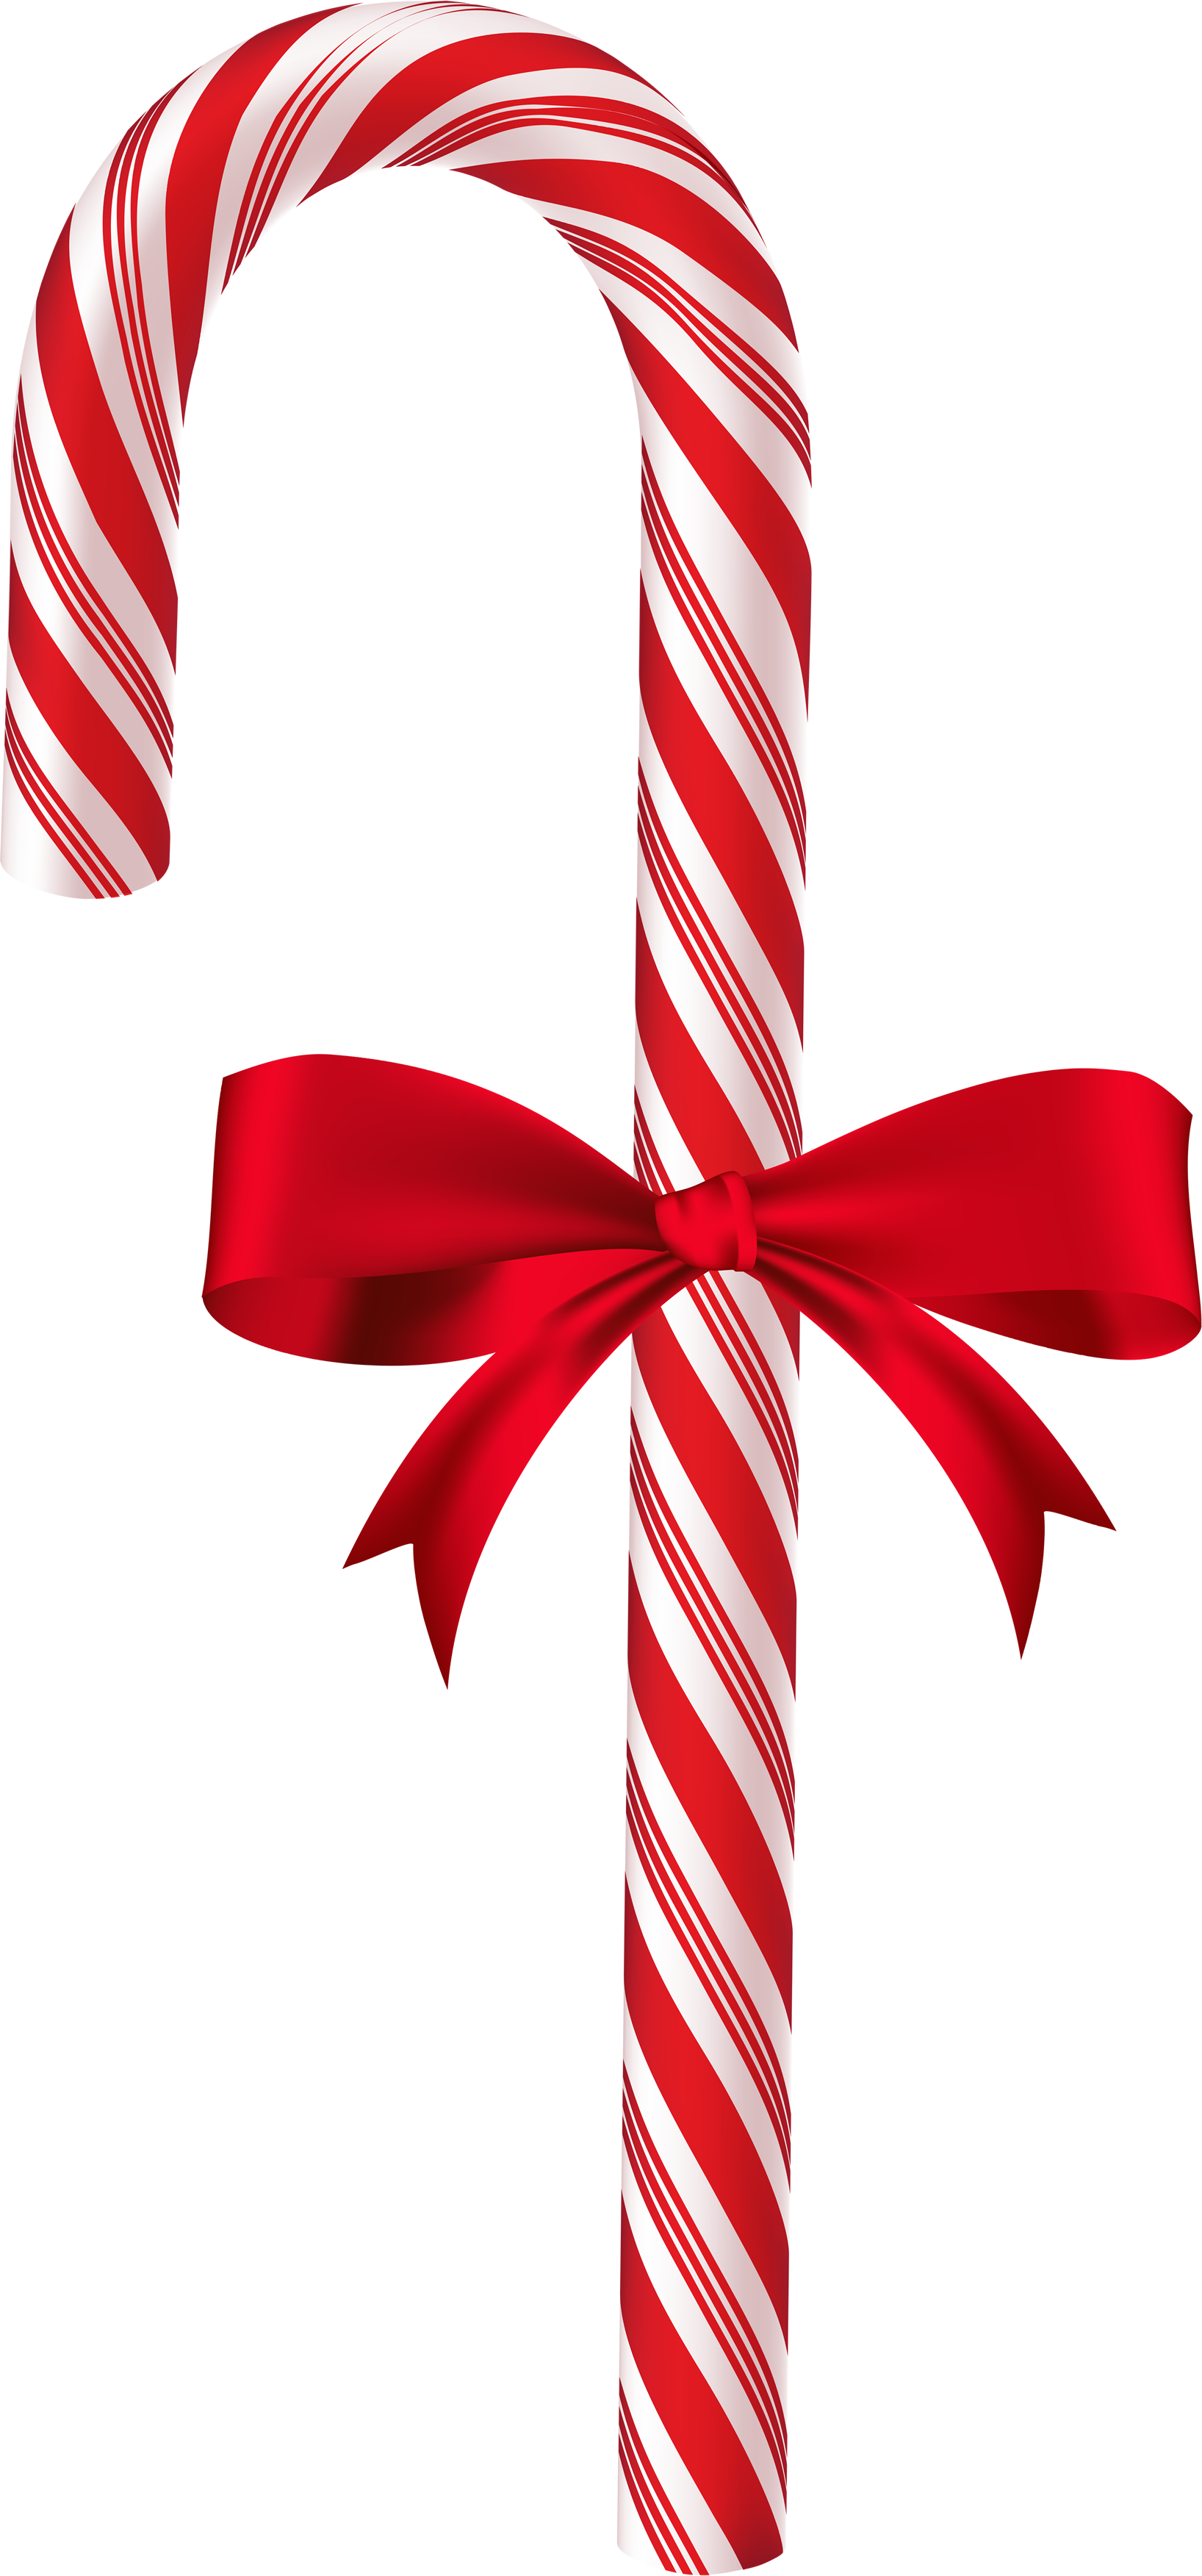 Cane transparent background. Christmas candy png image